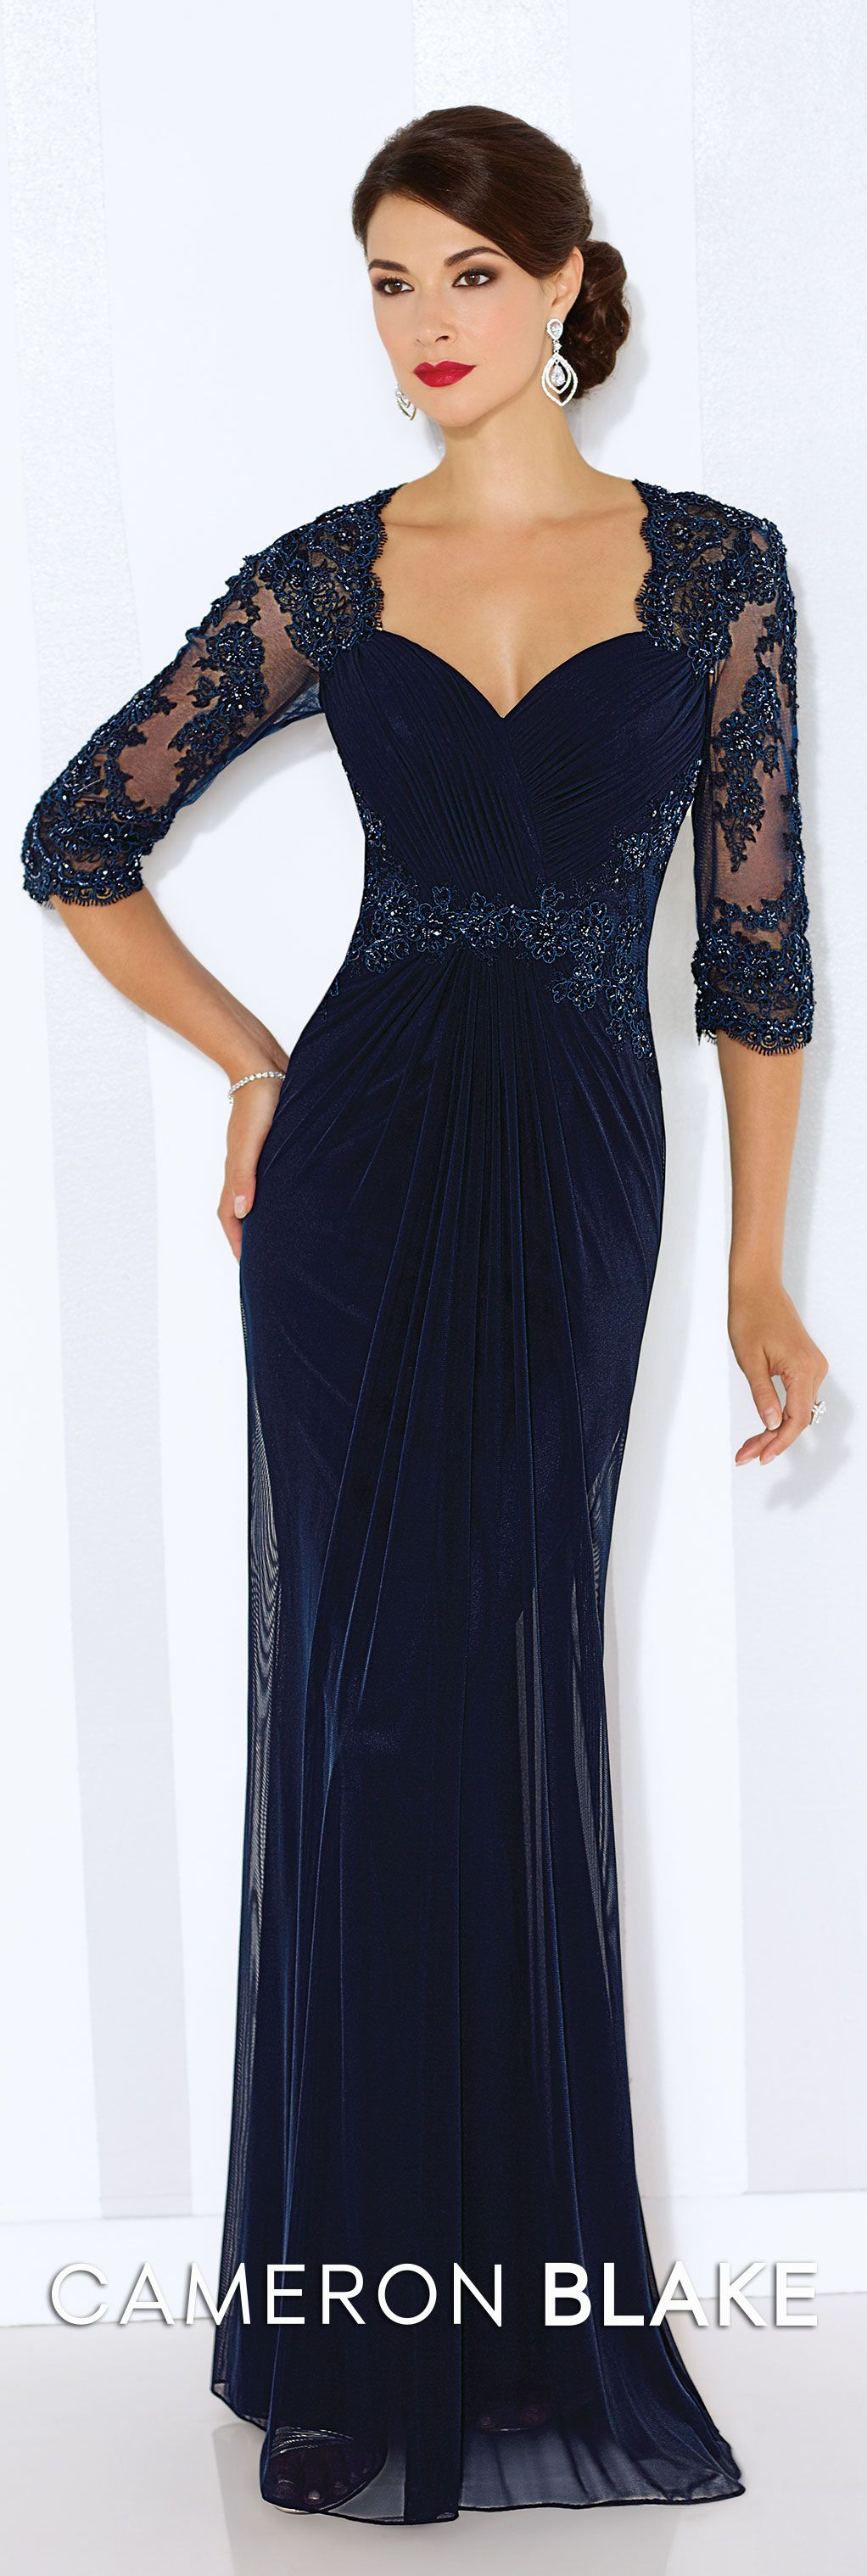 Cameron Blake Mother of the Bride Dresses & Dress Suits 2018 ...